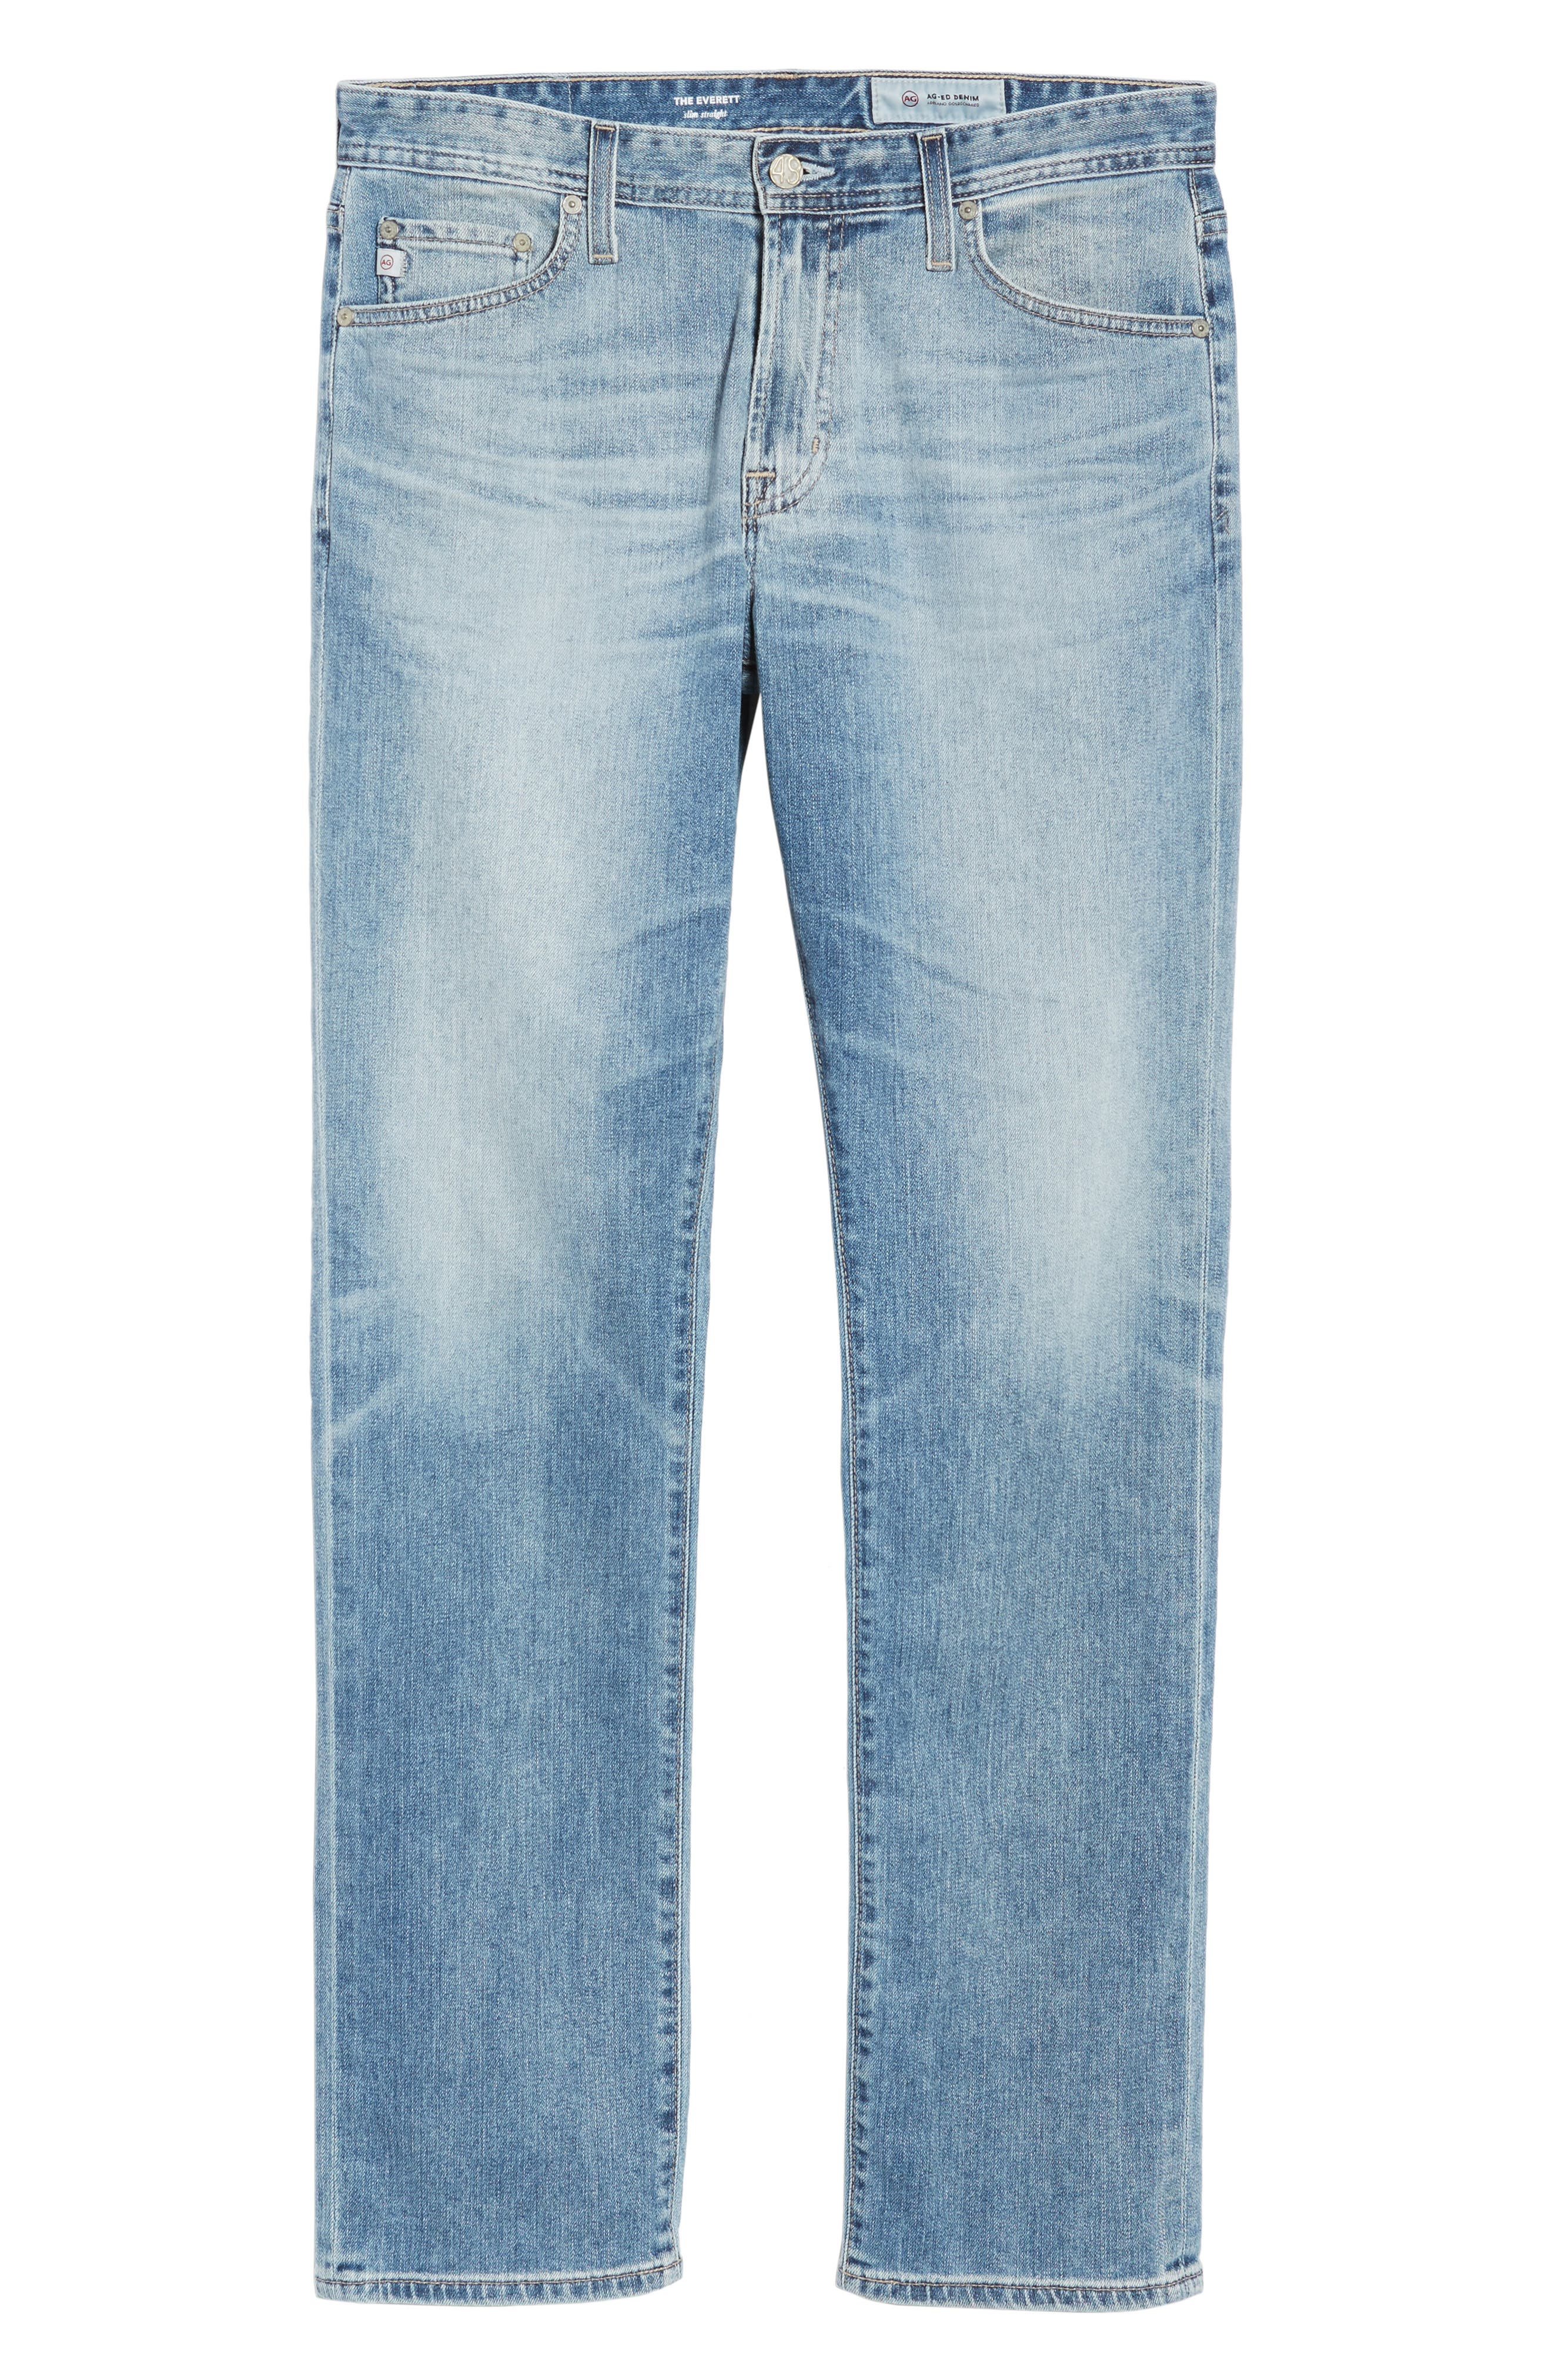 Everett Slim Straight Fit Jeans,                             Alternate thumbnail 6, color,                             452